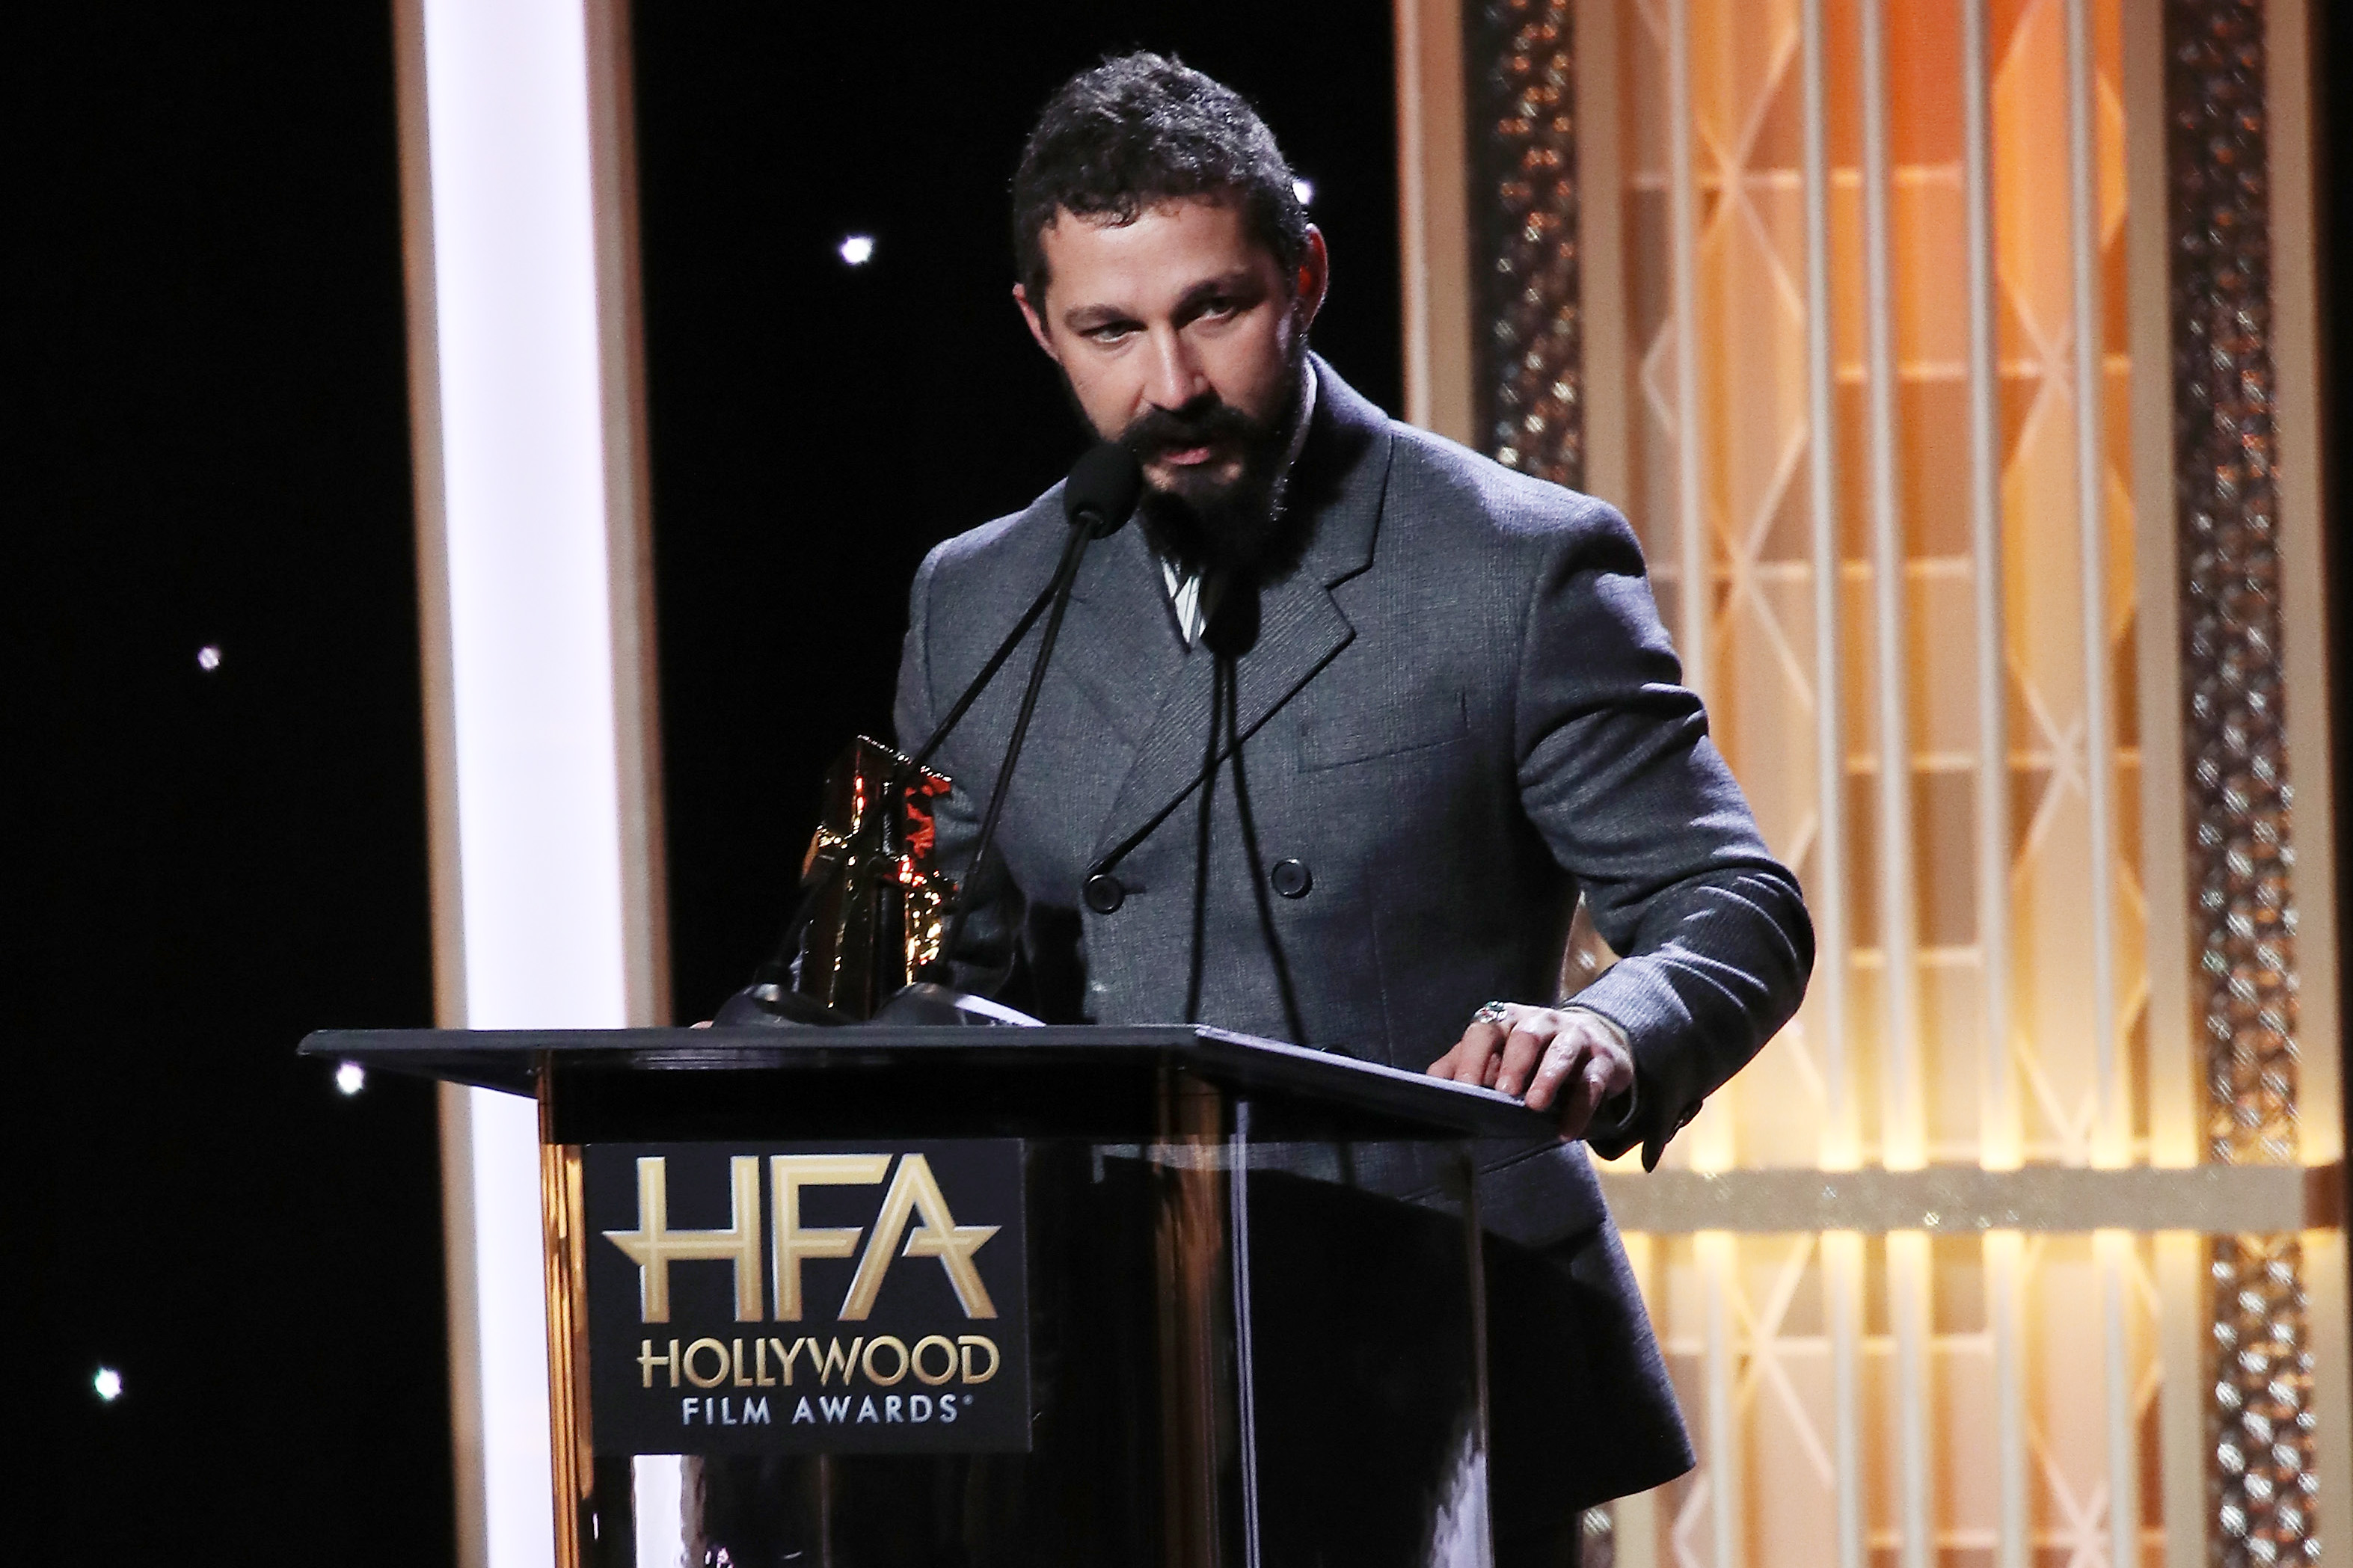 Shia LaBeouf appears on stage at the 23rd Annual Hollywood Film Awards show at The Beverly Hilton Hotel on November 03, 2019 in Beverly Hills, California. (Photo by David Livingston/Getty Images)